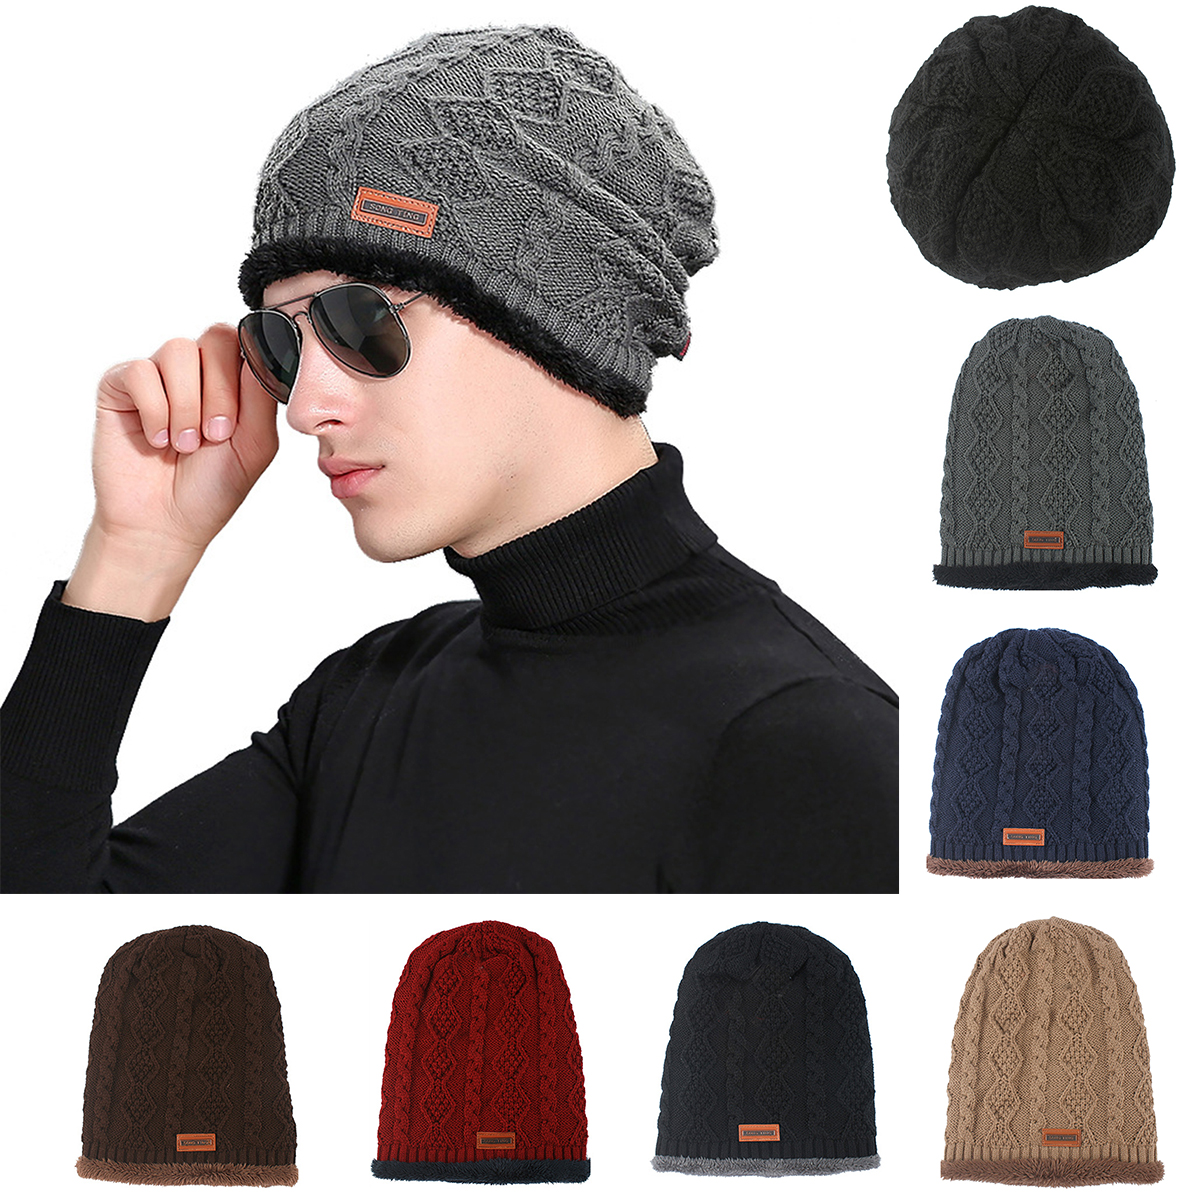 2016 Winter Men Baggy Beanies Knit Hat Caps Skullies Bonnet Winter Hats For Men Women Beanie Fur Warm Baggy Wool Knitted Hat brand skullies winter hats for men bonnet beanies knitted winter hat caps beanie warm baggy cap gorros touca hat 2016 kc010